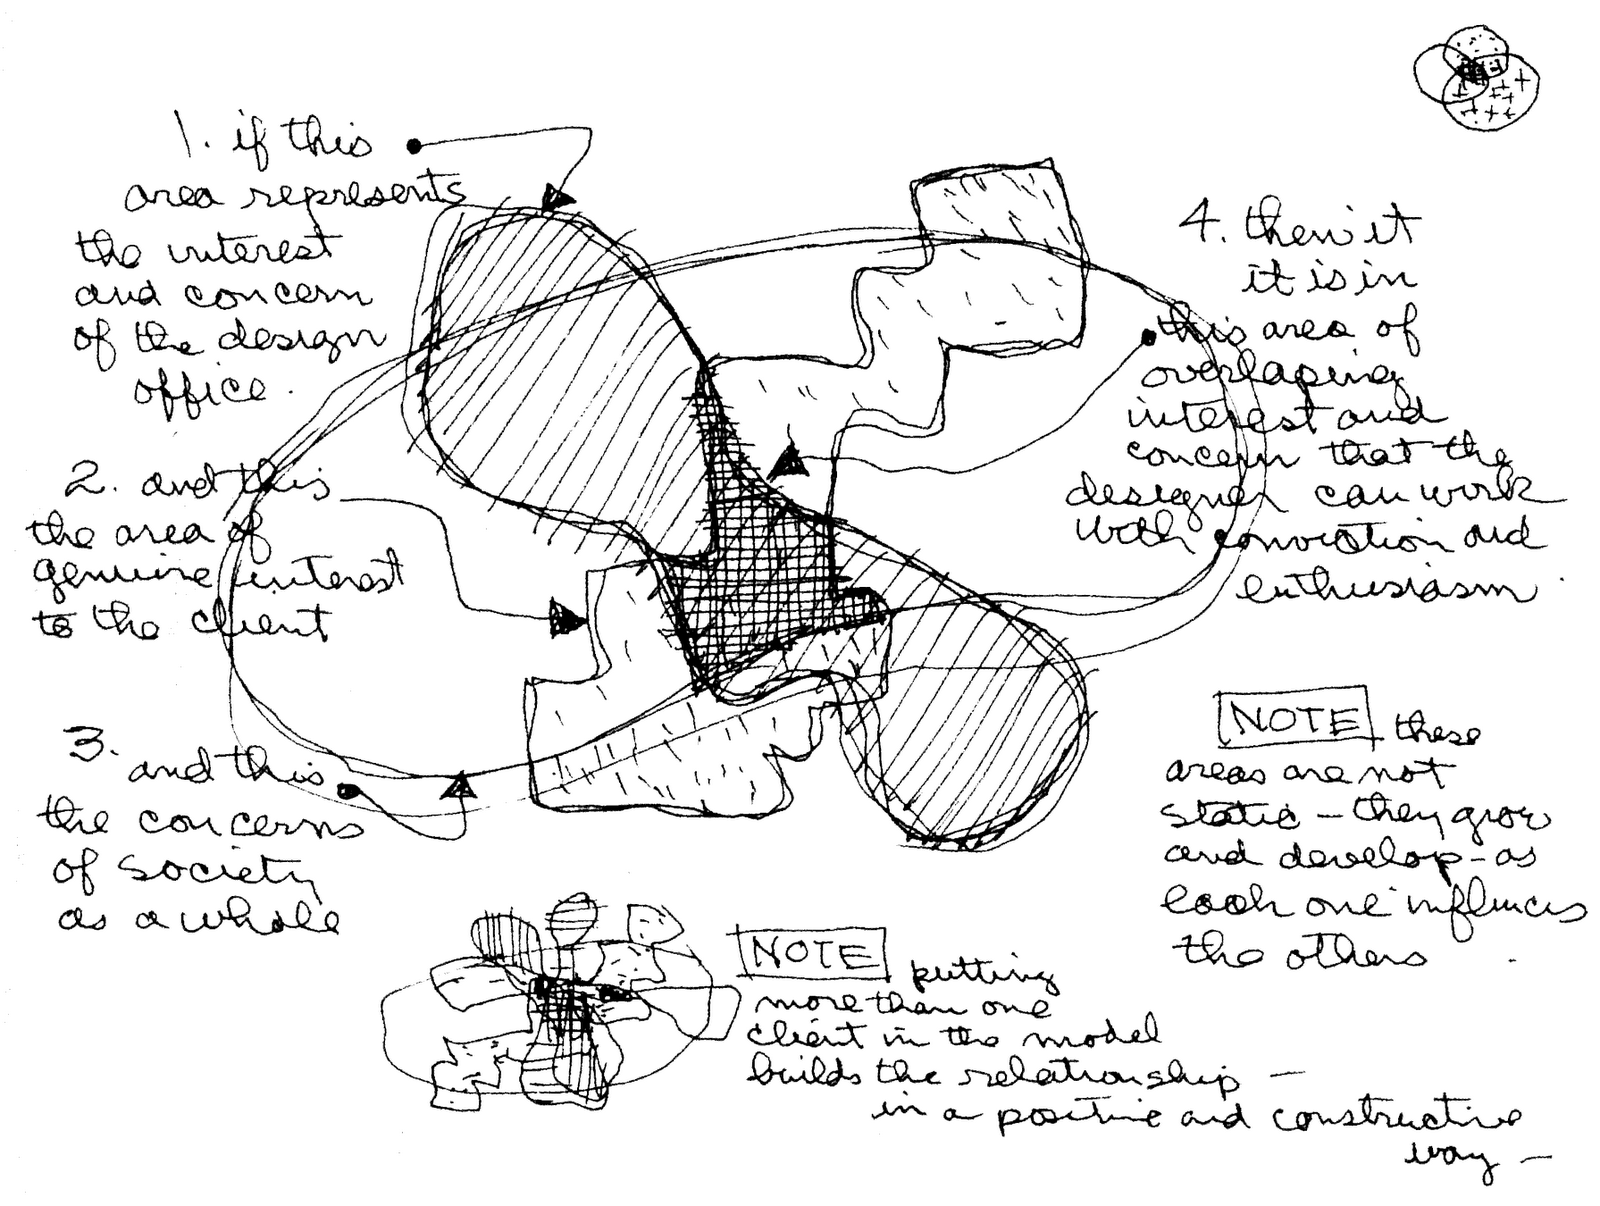 The Charles Eames Design Diagram